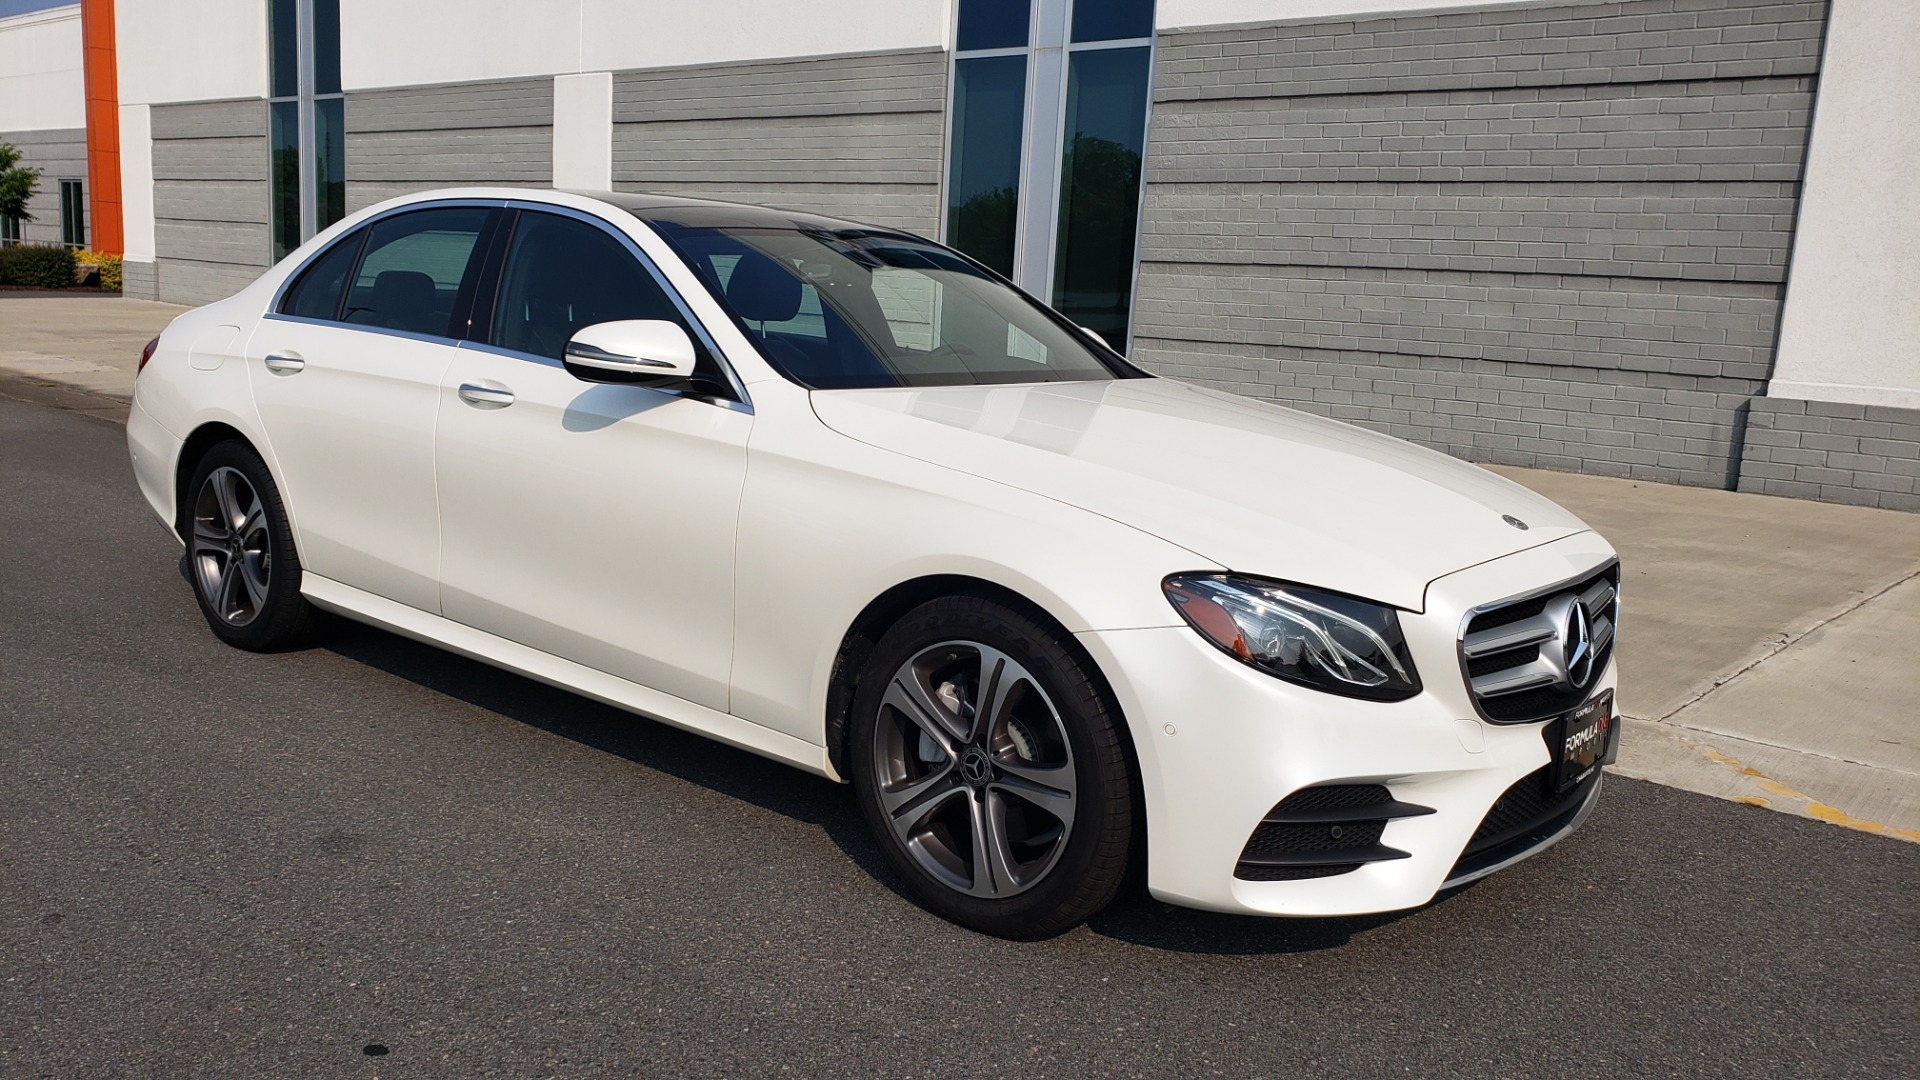 Used 2018 Mercedes-Benz E-CLASS E 300 4MATIC / PREMIUM / NAV / PANO-ROOF / BURMESTER / REARVIEW for sale $41,995 at Formula Imports in Charlotte NC 28227 8